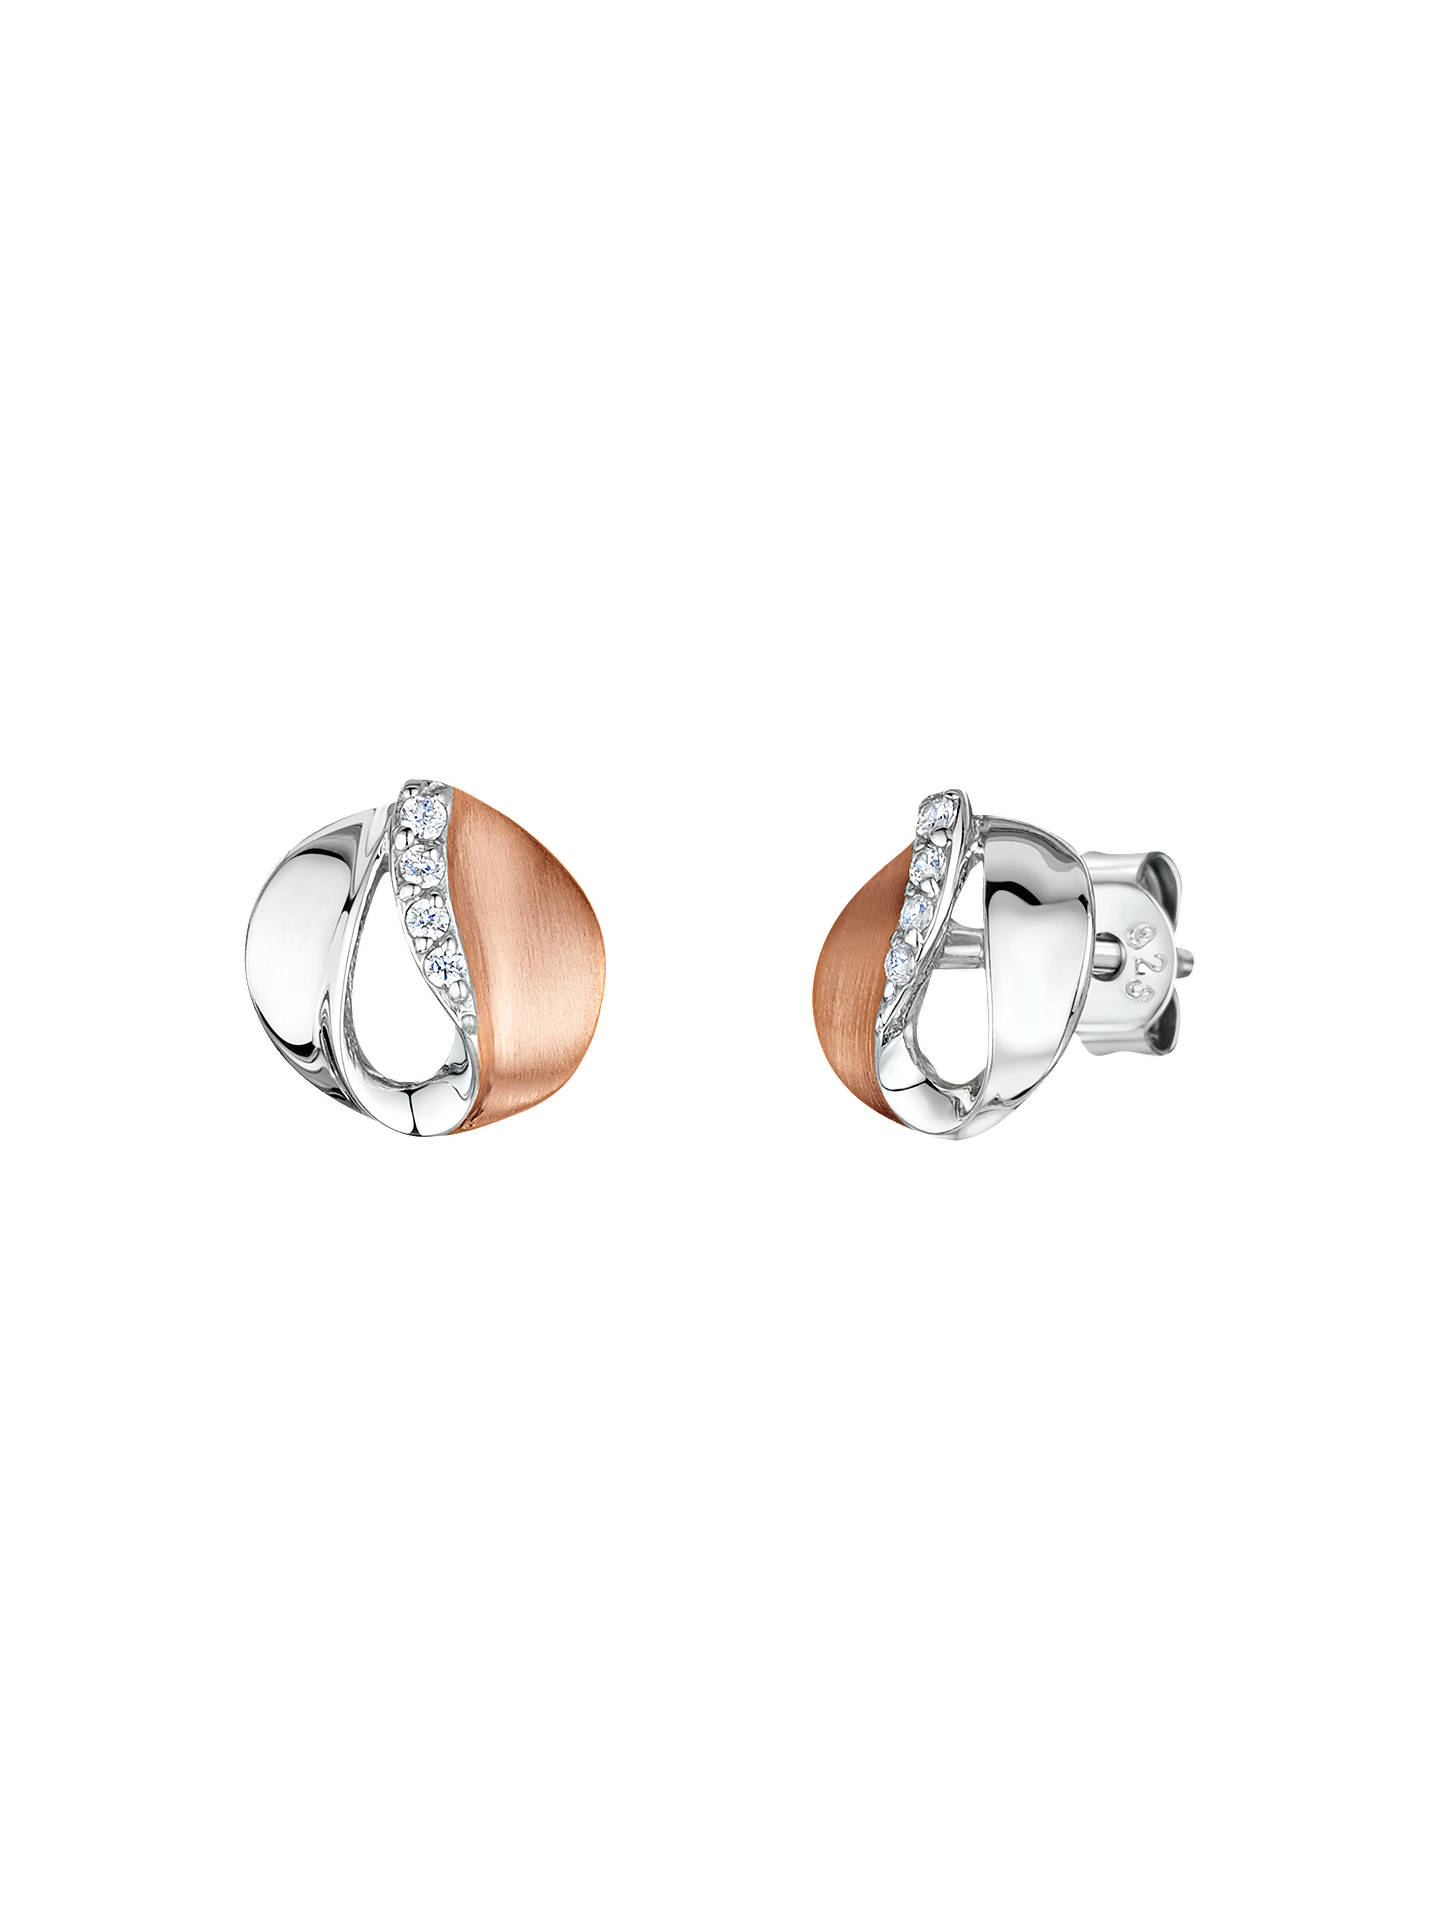 BuyJools by Jenny Brown Cubic Zirconia Two Toned Stud Earrings, Silver/Rose Gold Online